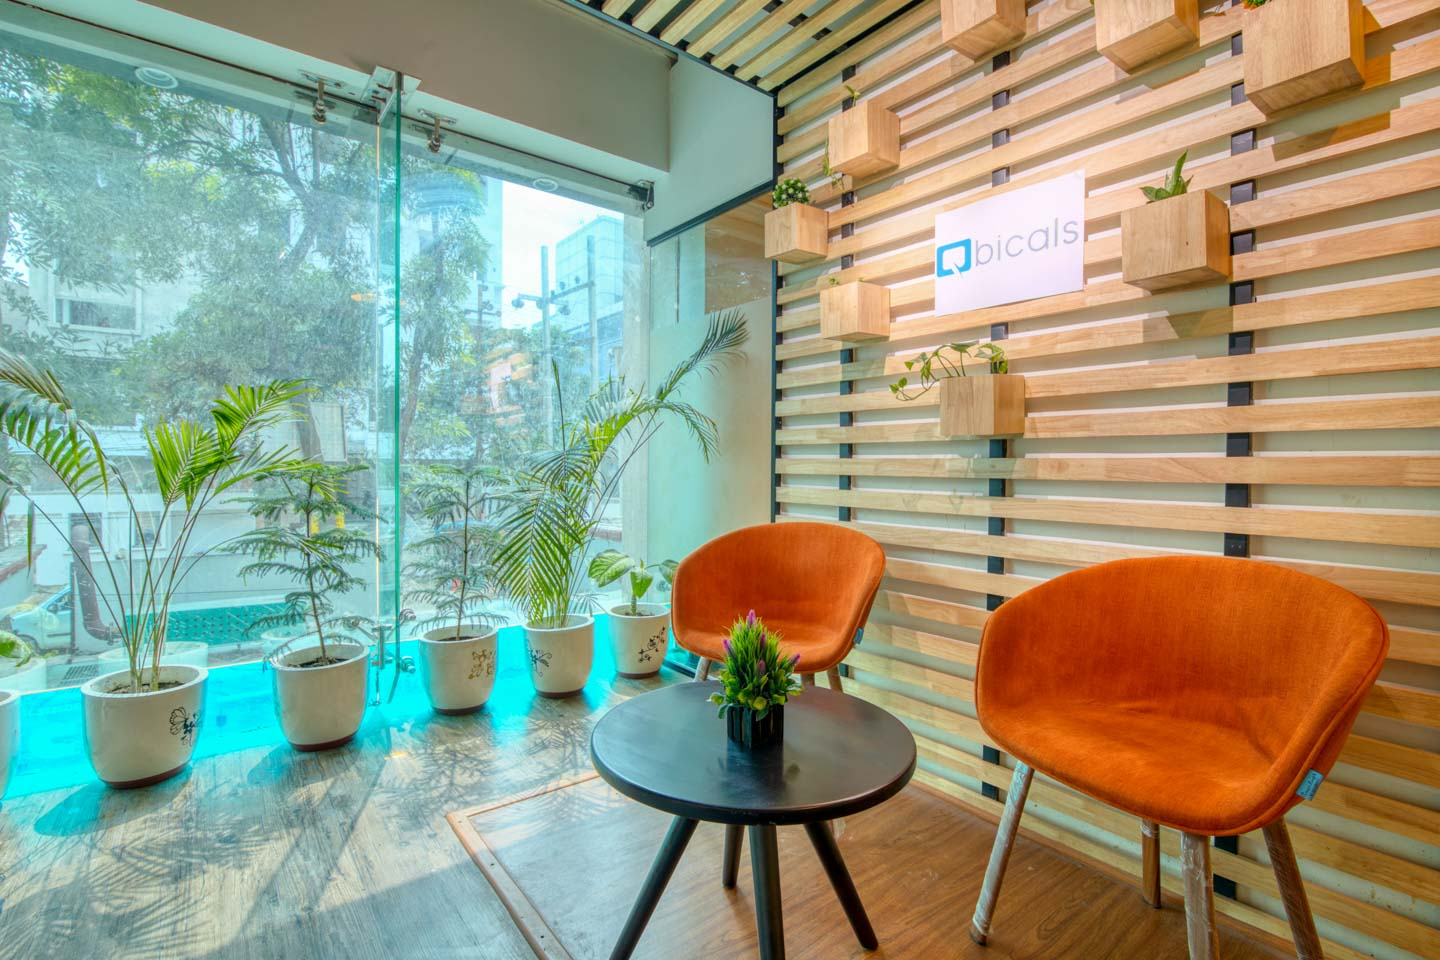 Coworking space in Sector 63, Noida